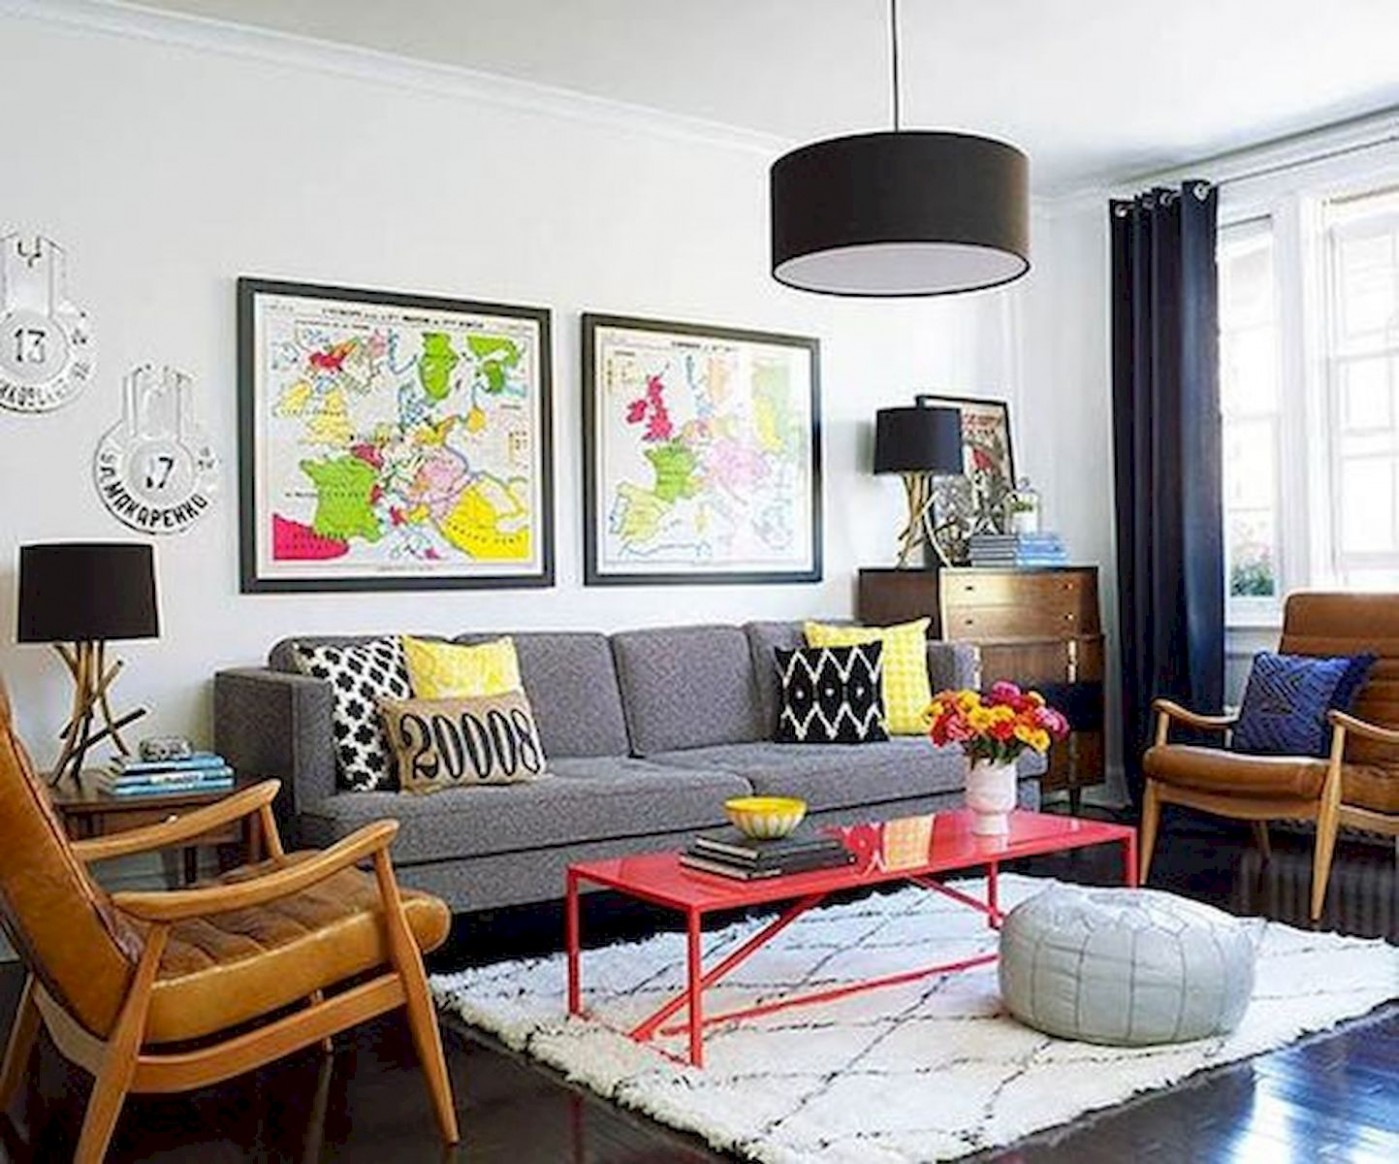 11 Amazing Small Apartment Decorating Ideas on a Budget – 11DECOR - Apartment Decorating Ideas For Young Adults